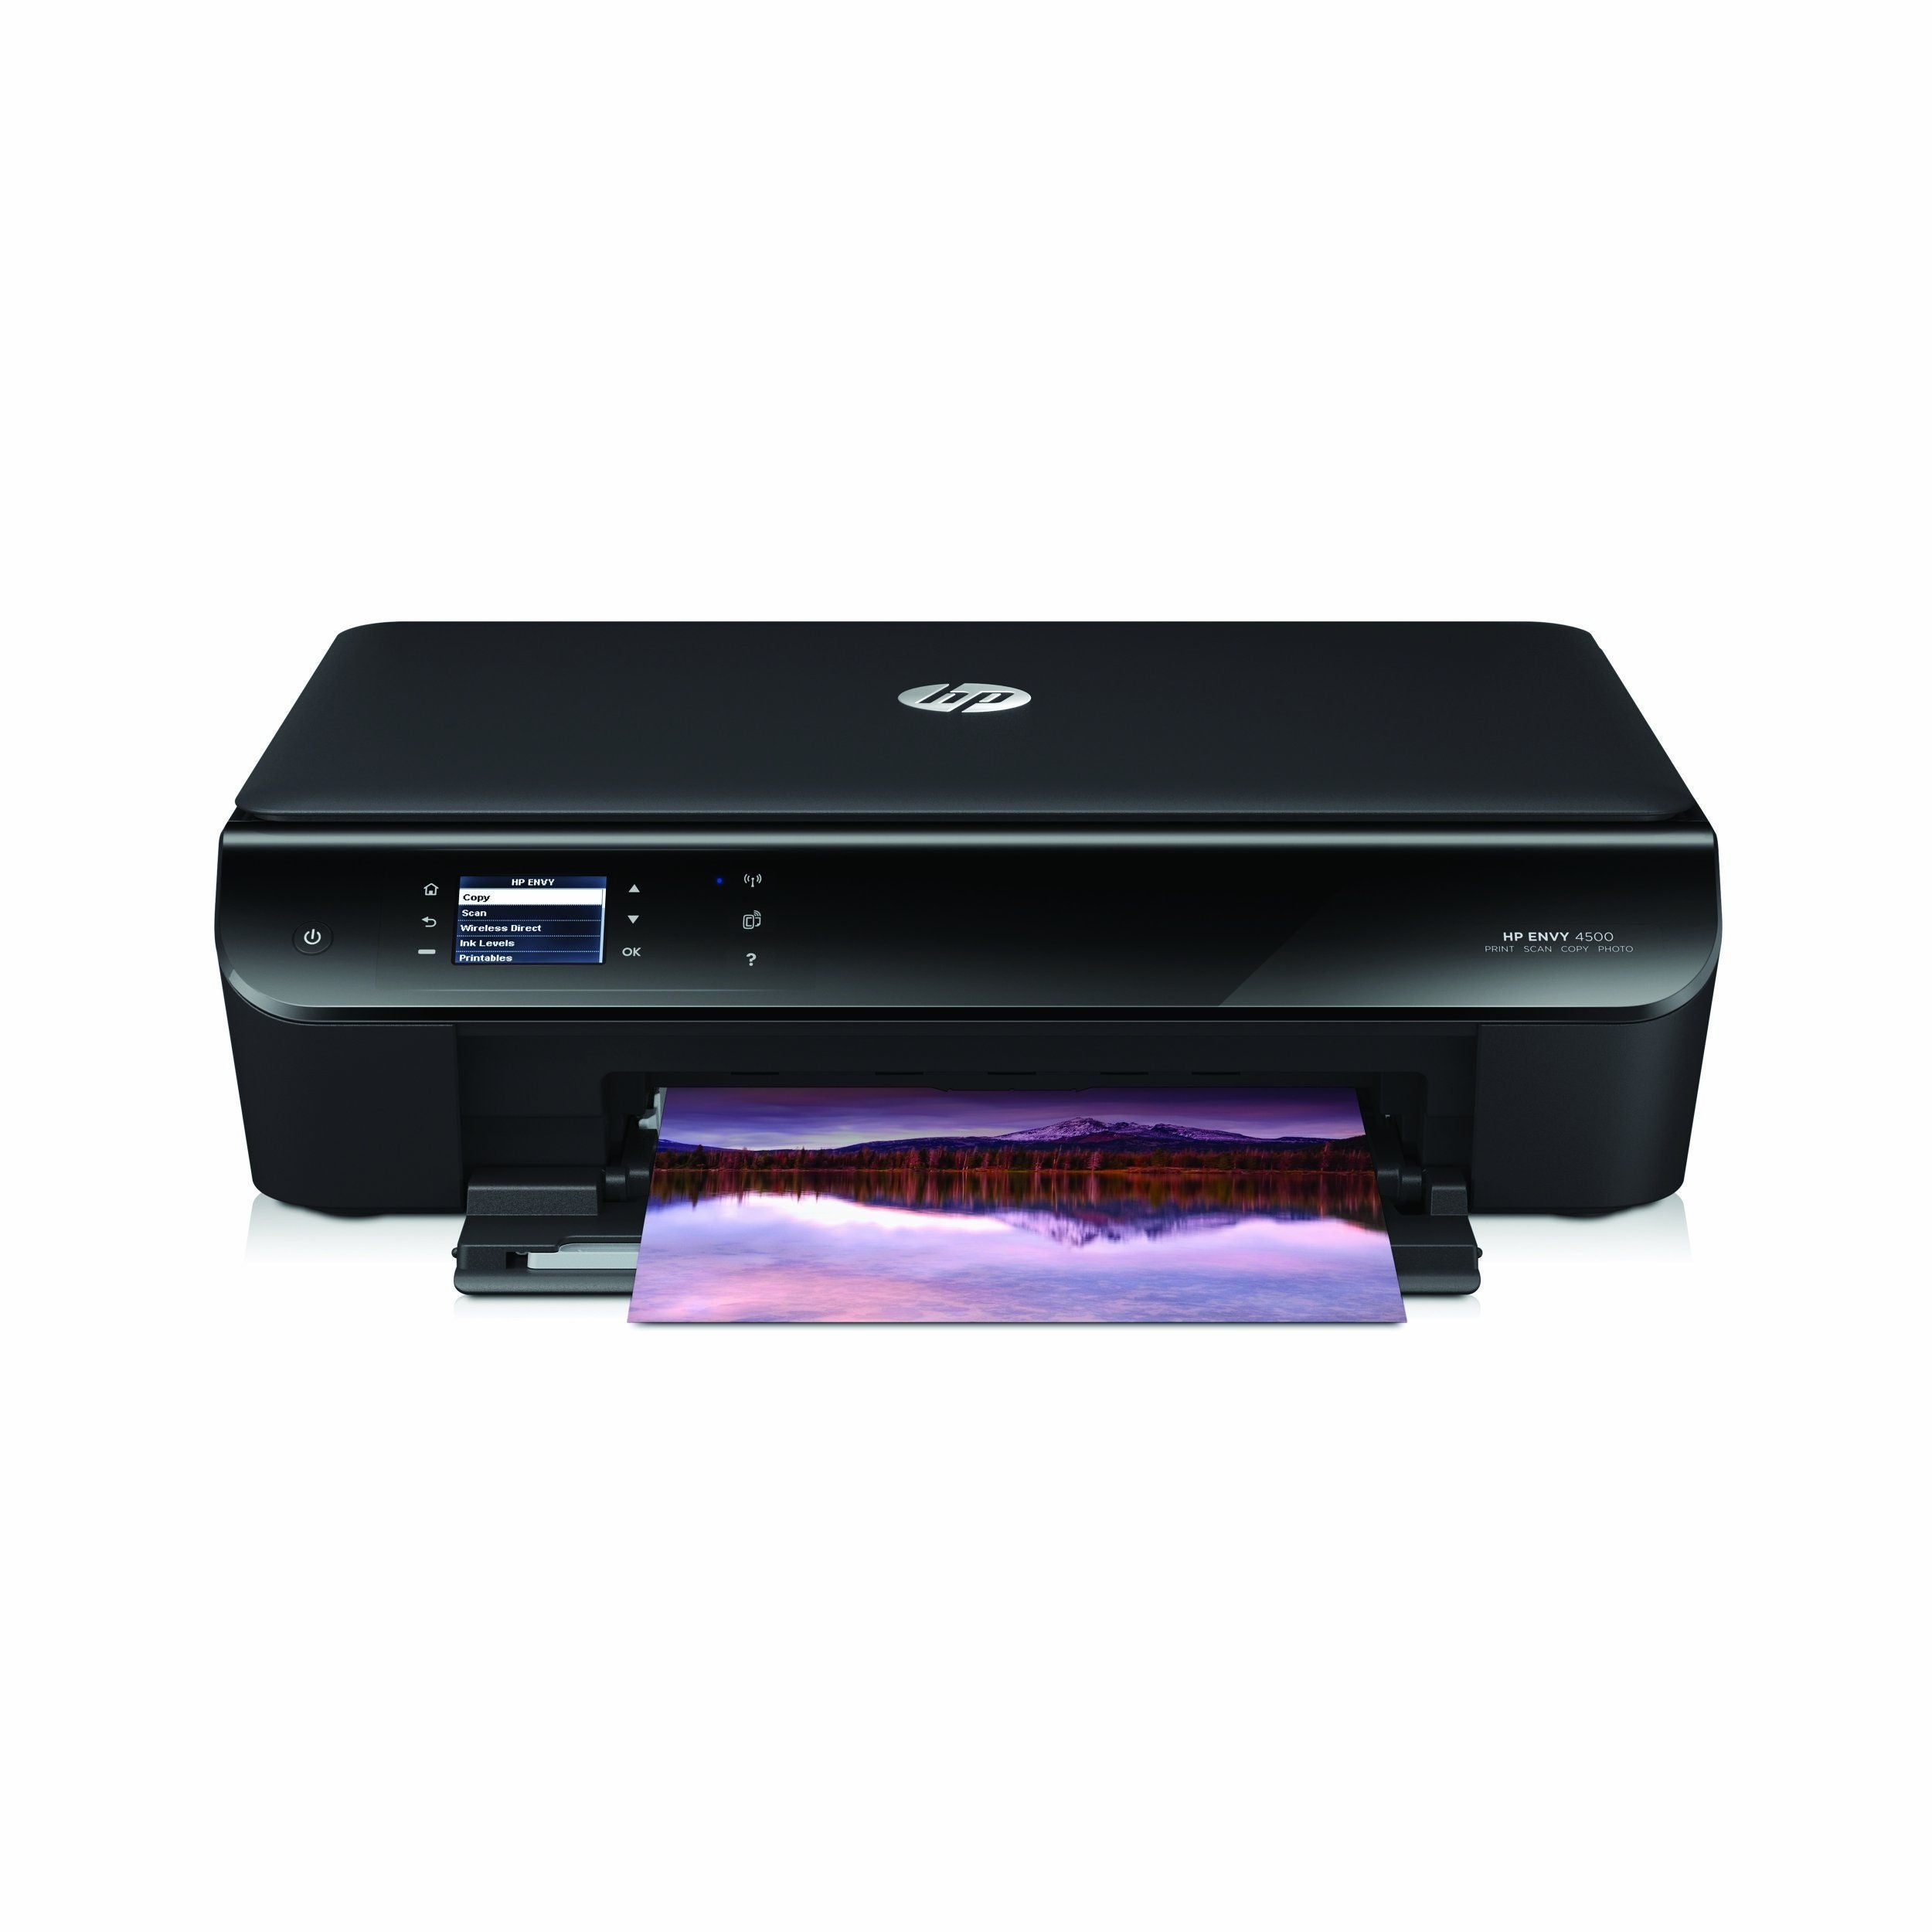 HP Envy 4500 Wireless e-All-in-One Color Photo Printer A9T80A with Black//Color Ink Bundle CR259FN Renewed